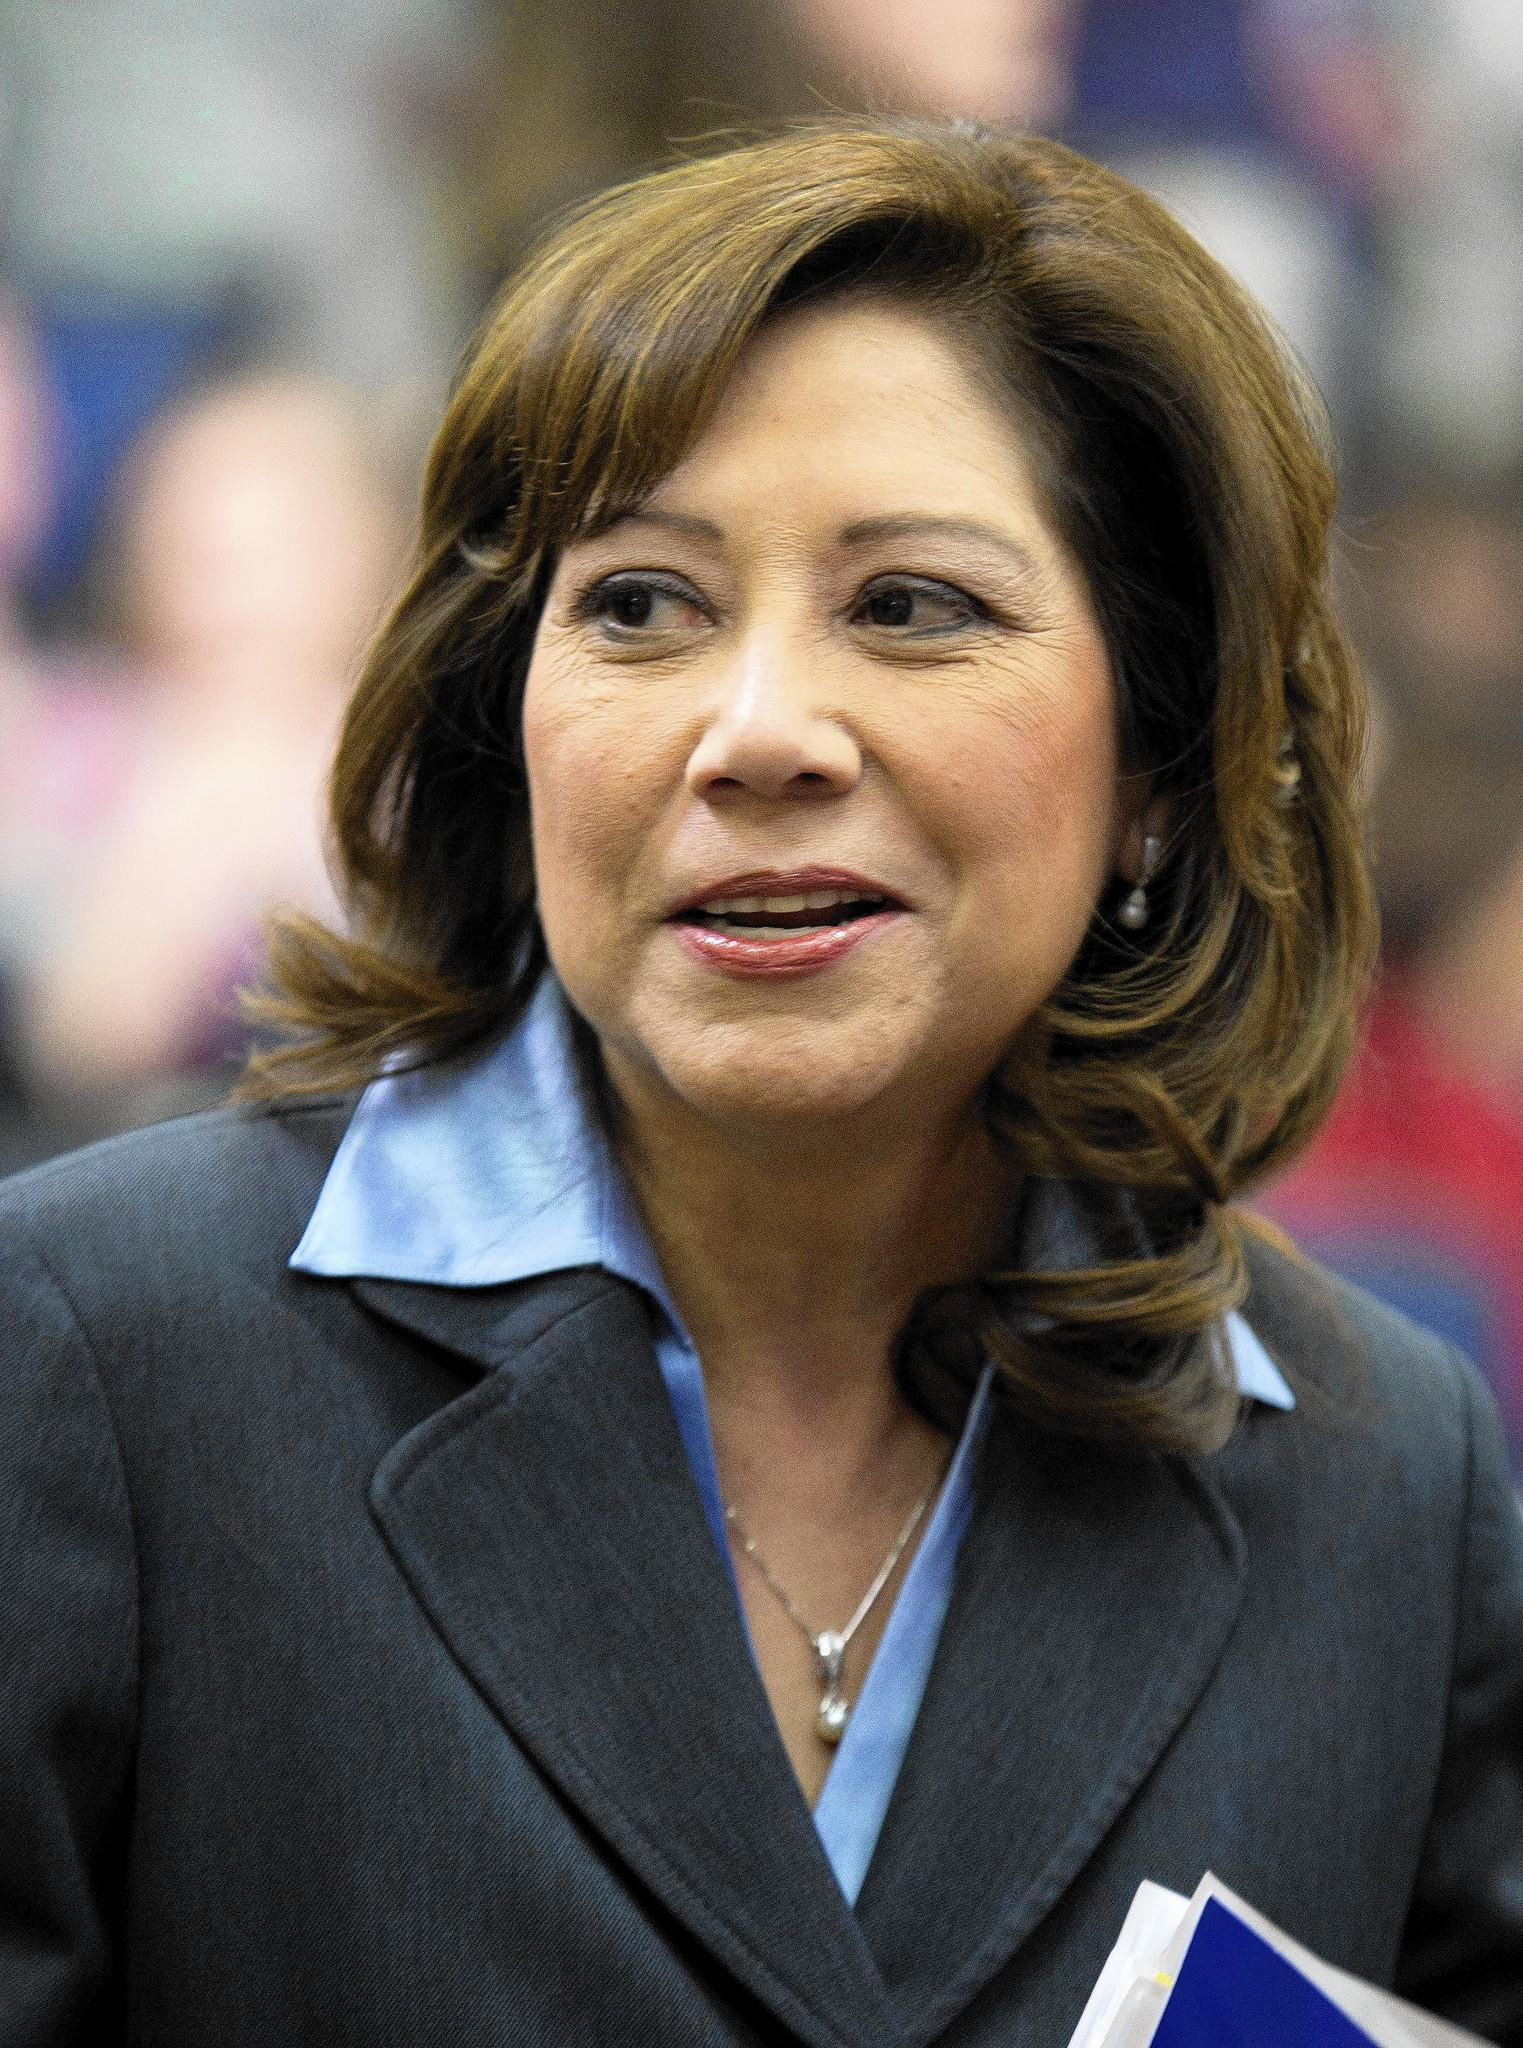 Former U.S. Labor Secretary Hilda Solis is running to succeed outgoing L.A. County Supervisor Gloria Molina.